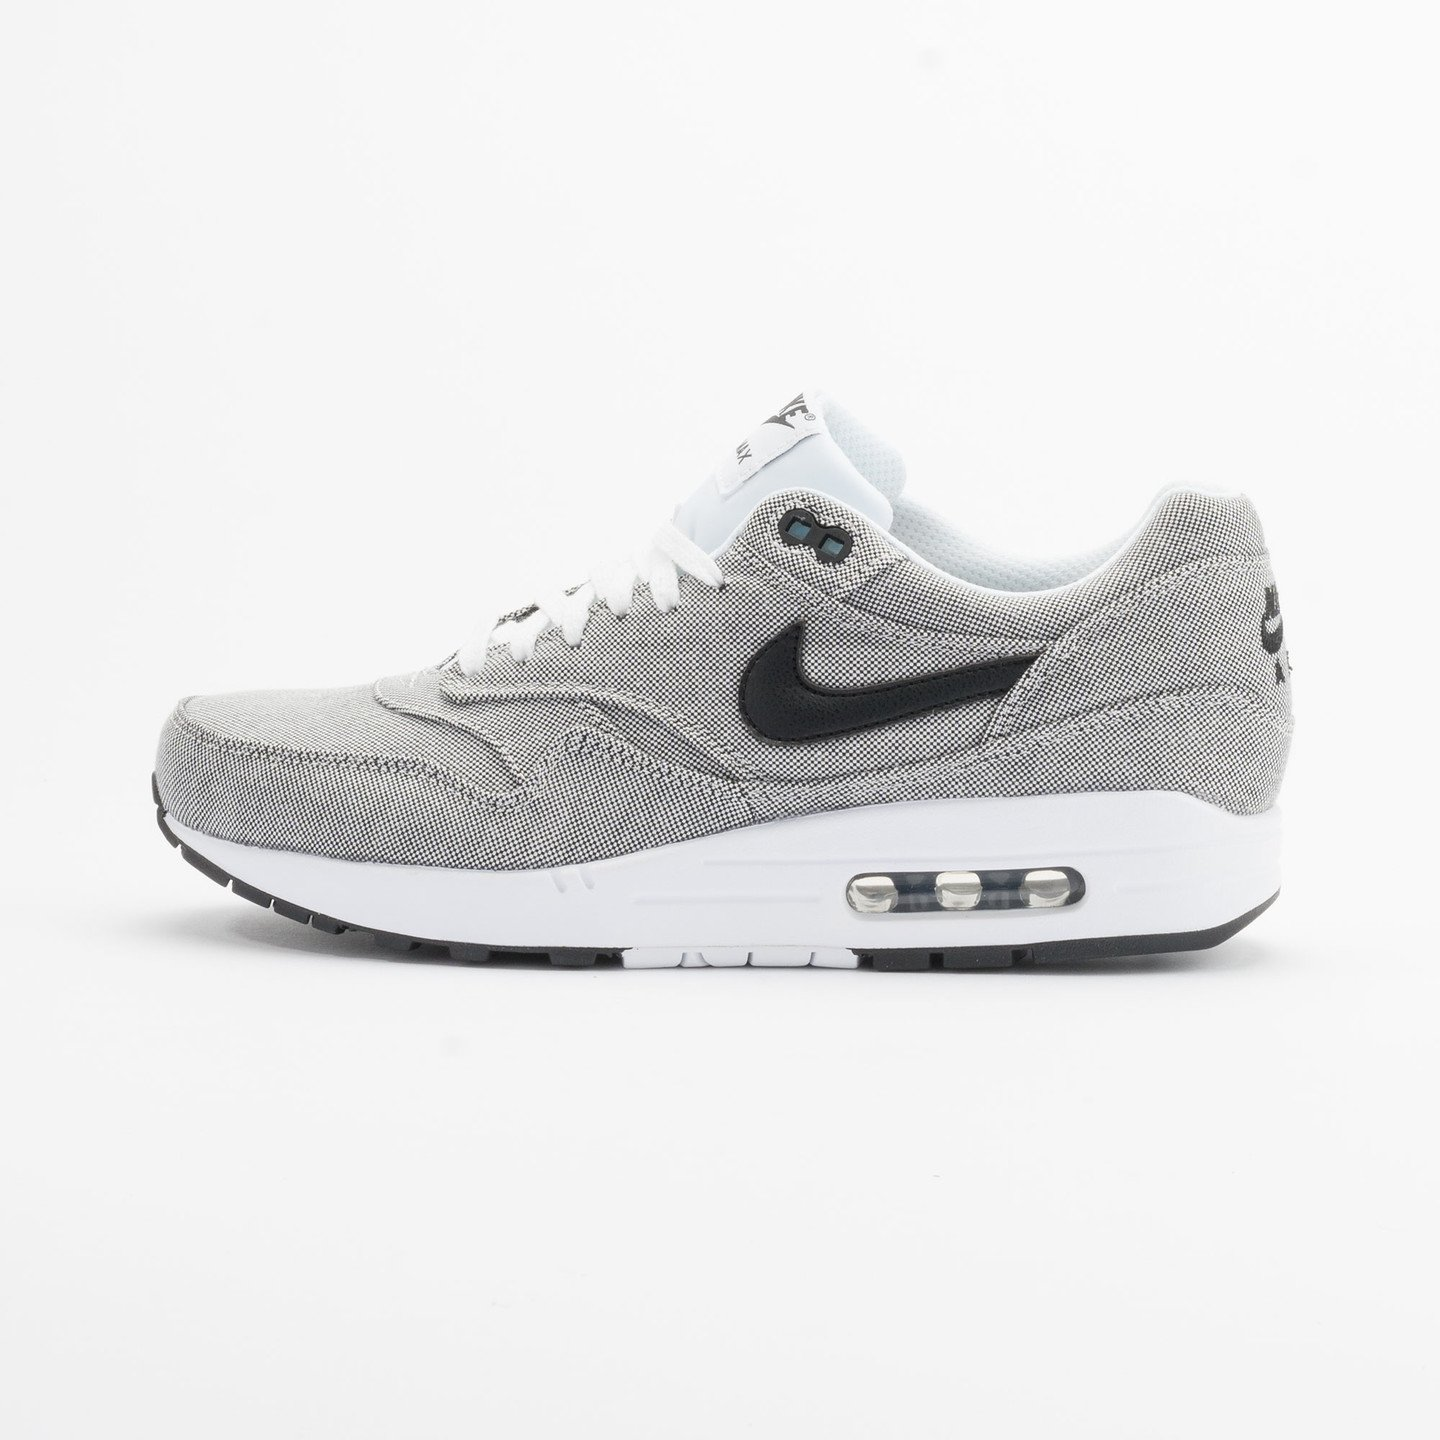 Nike Air Max 1 Prm Picknick Pack Black/White 512033-103-44